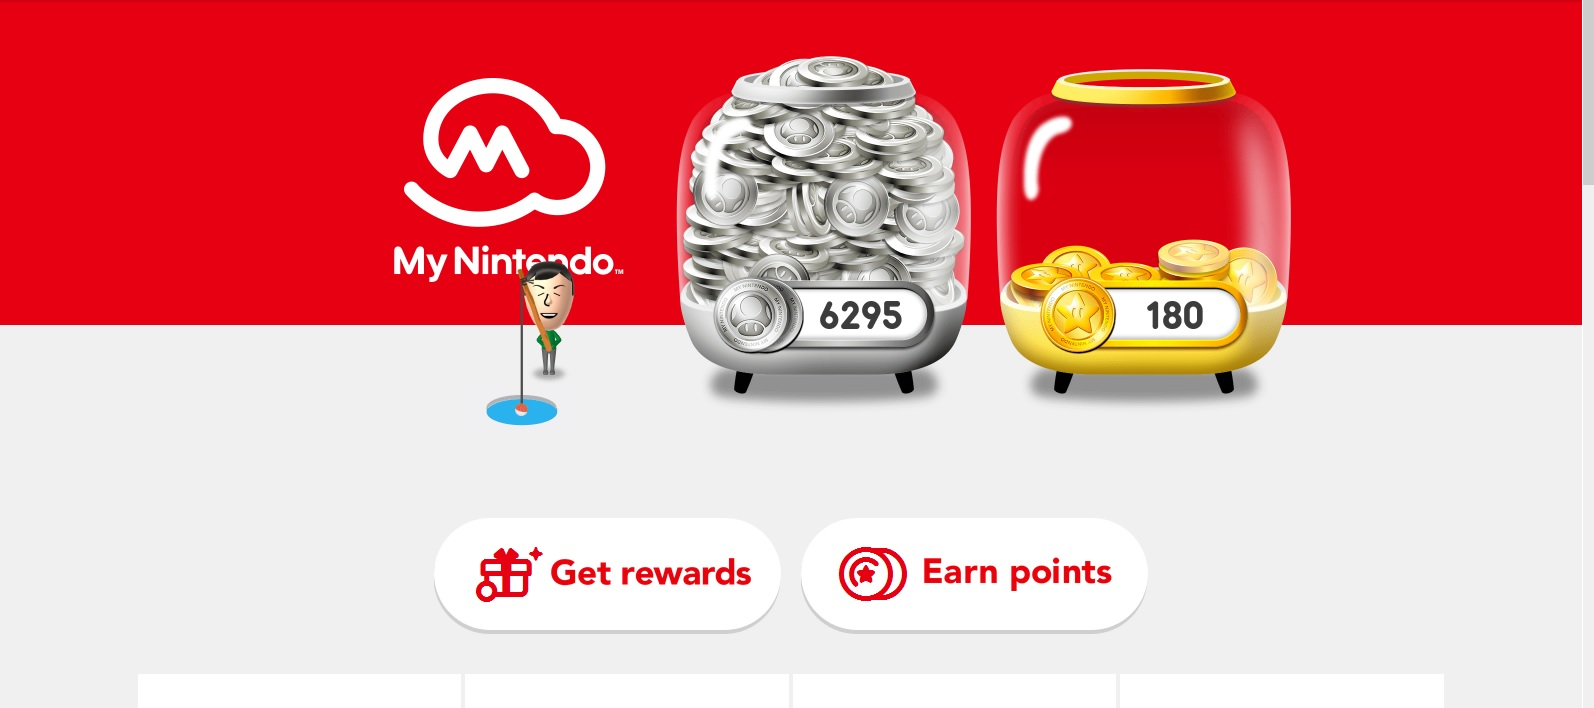 My Nintendo: website redesign now live, list of changes - Perfectly Nintendo